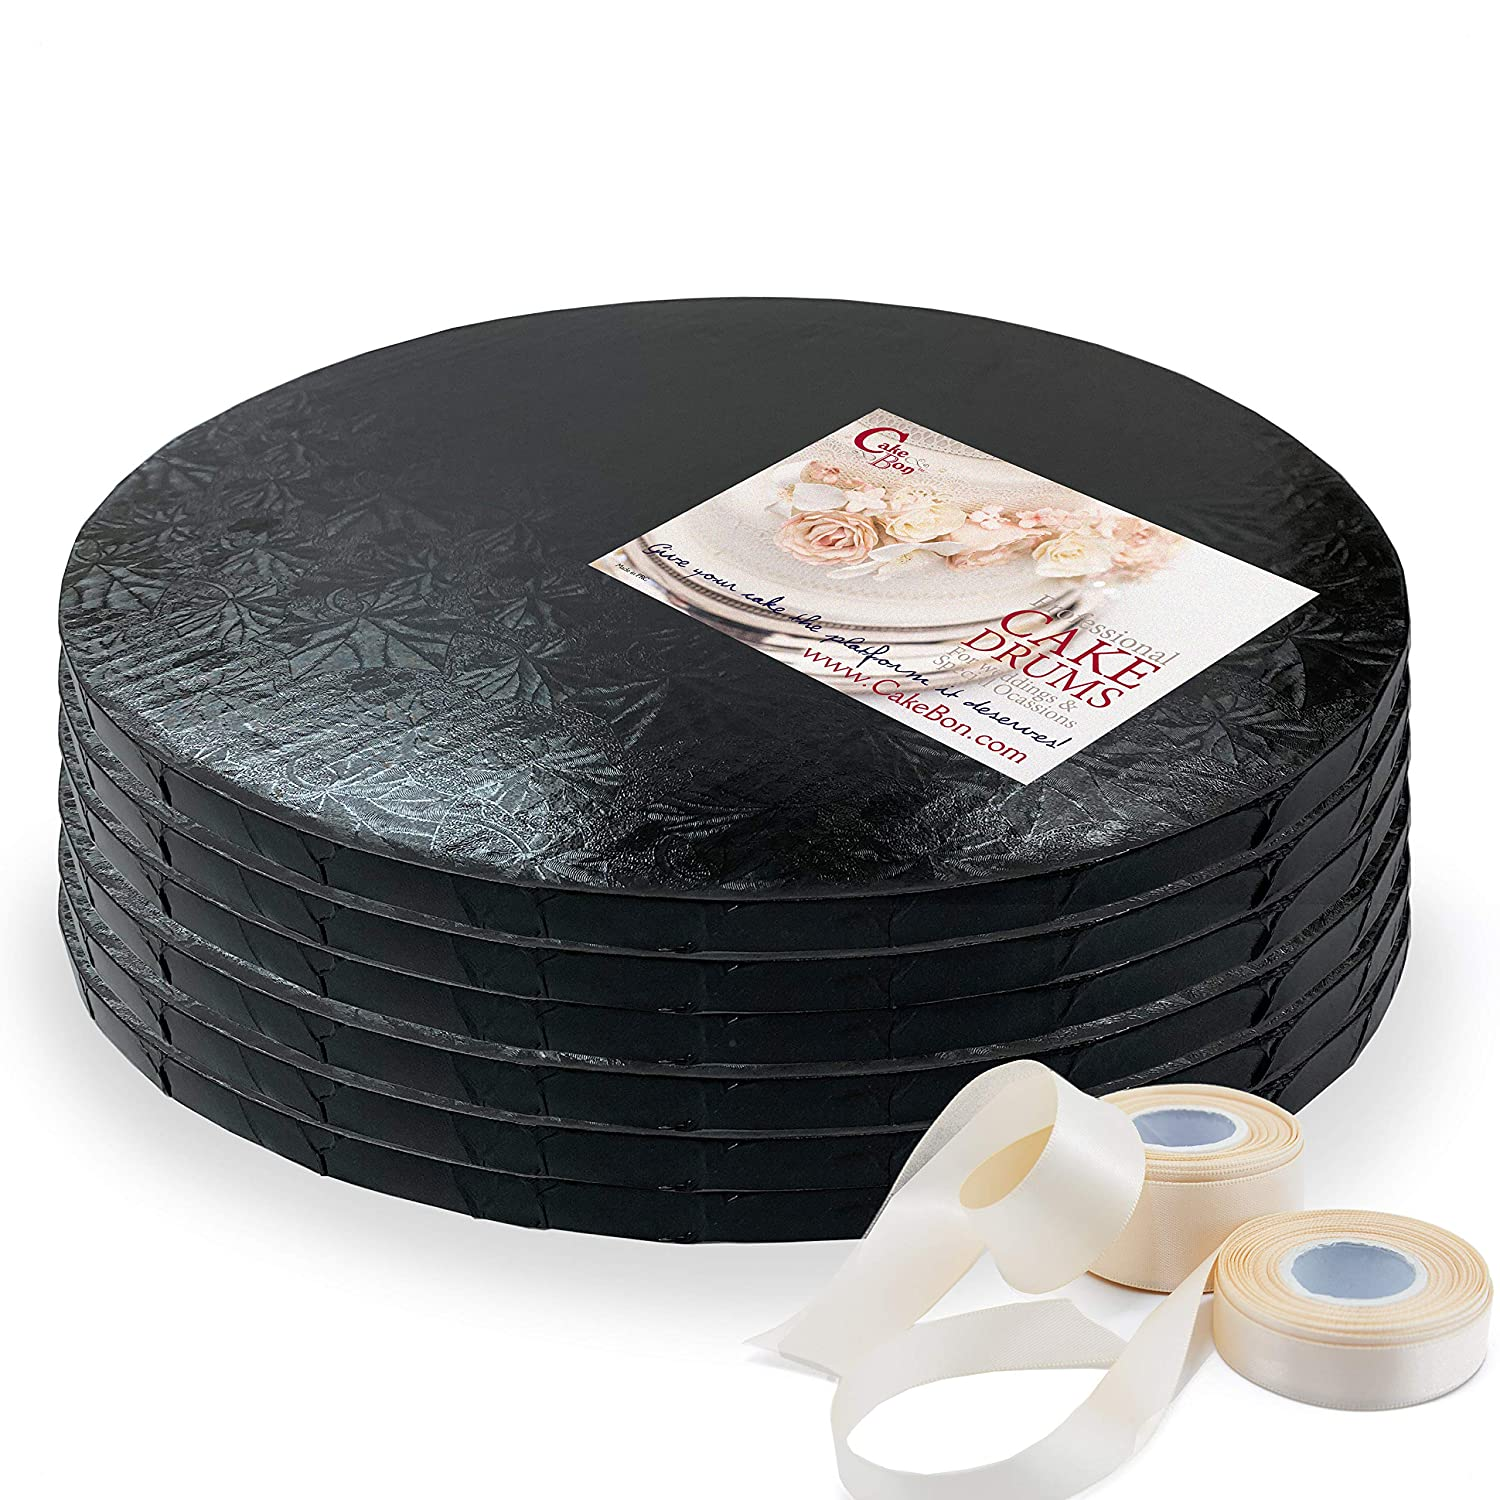 Cake Drums Round 14 Bargain Inches - Black 2 1 6-Pack 2021 model T Inch Sturdy